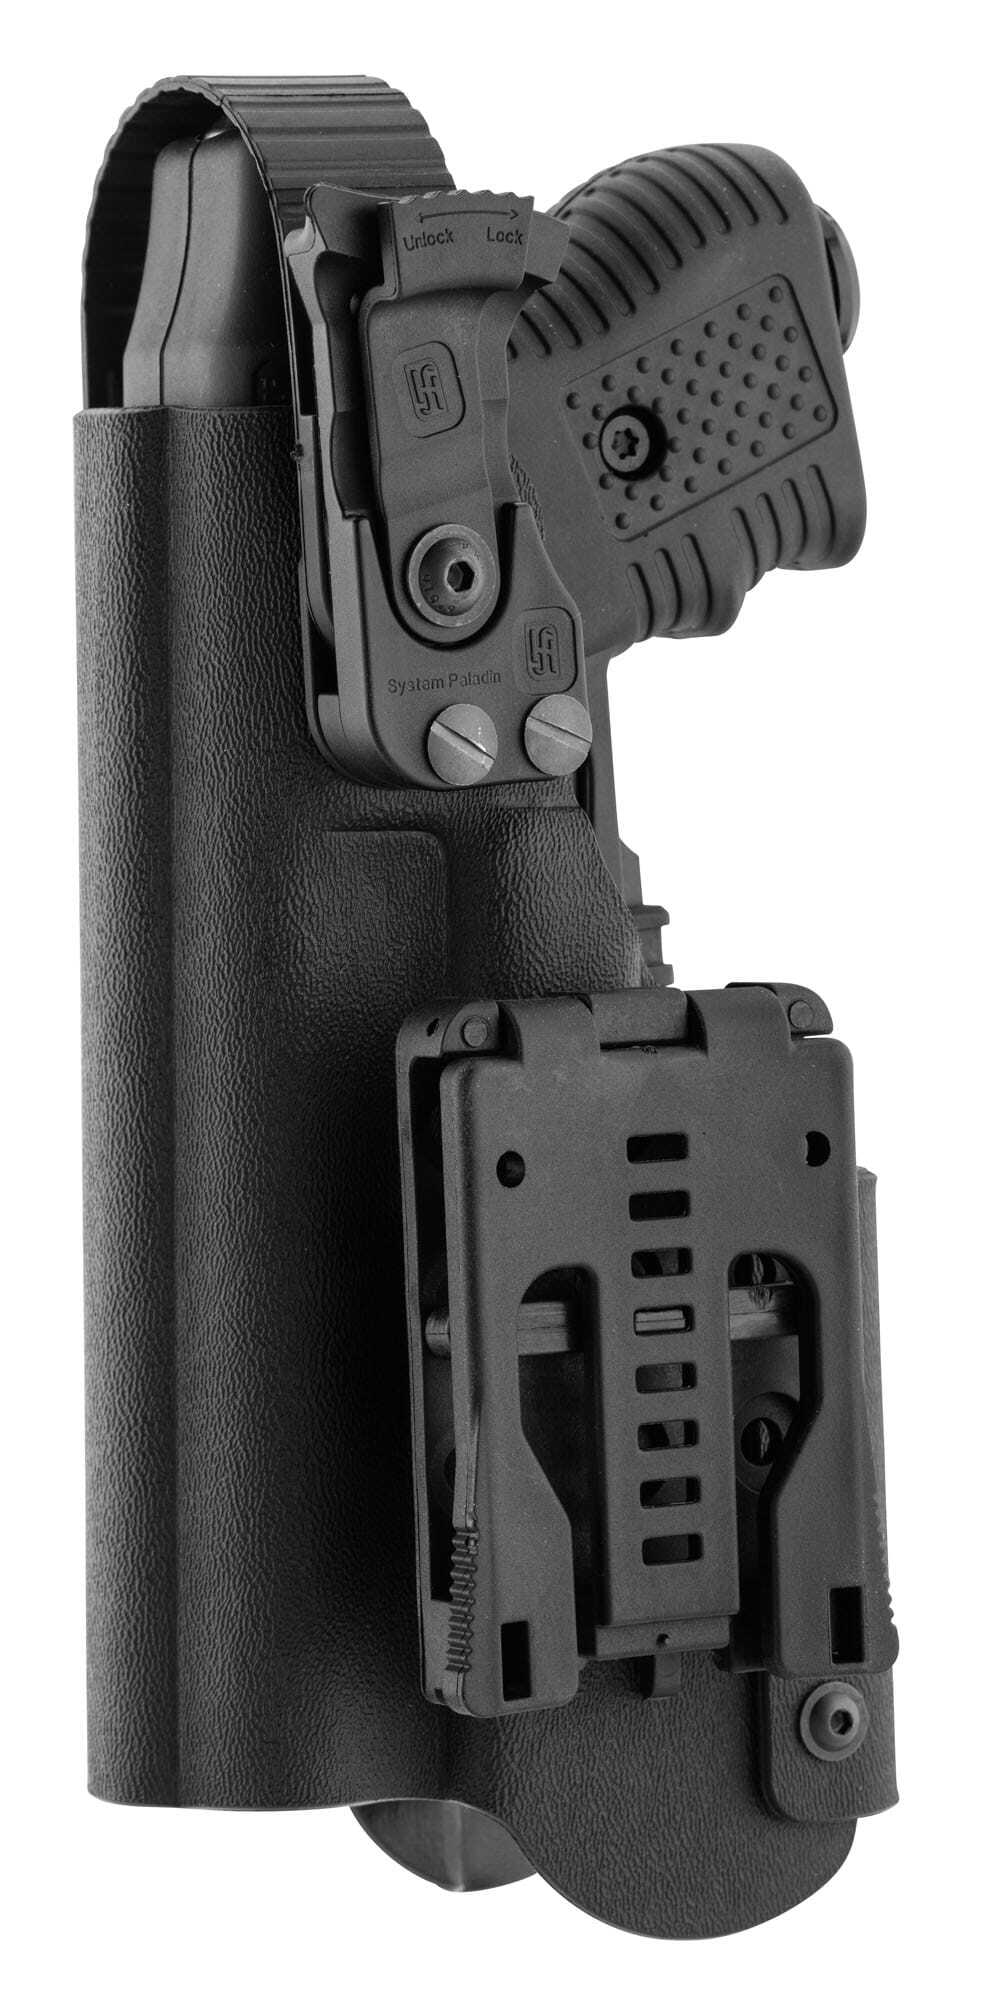 JPX390-1-Holster pour JPX - Kydex Paladin II avec lampe tactique - JPX390